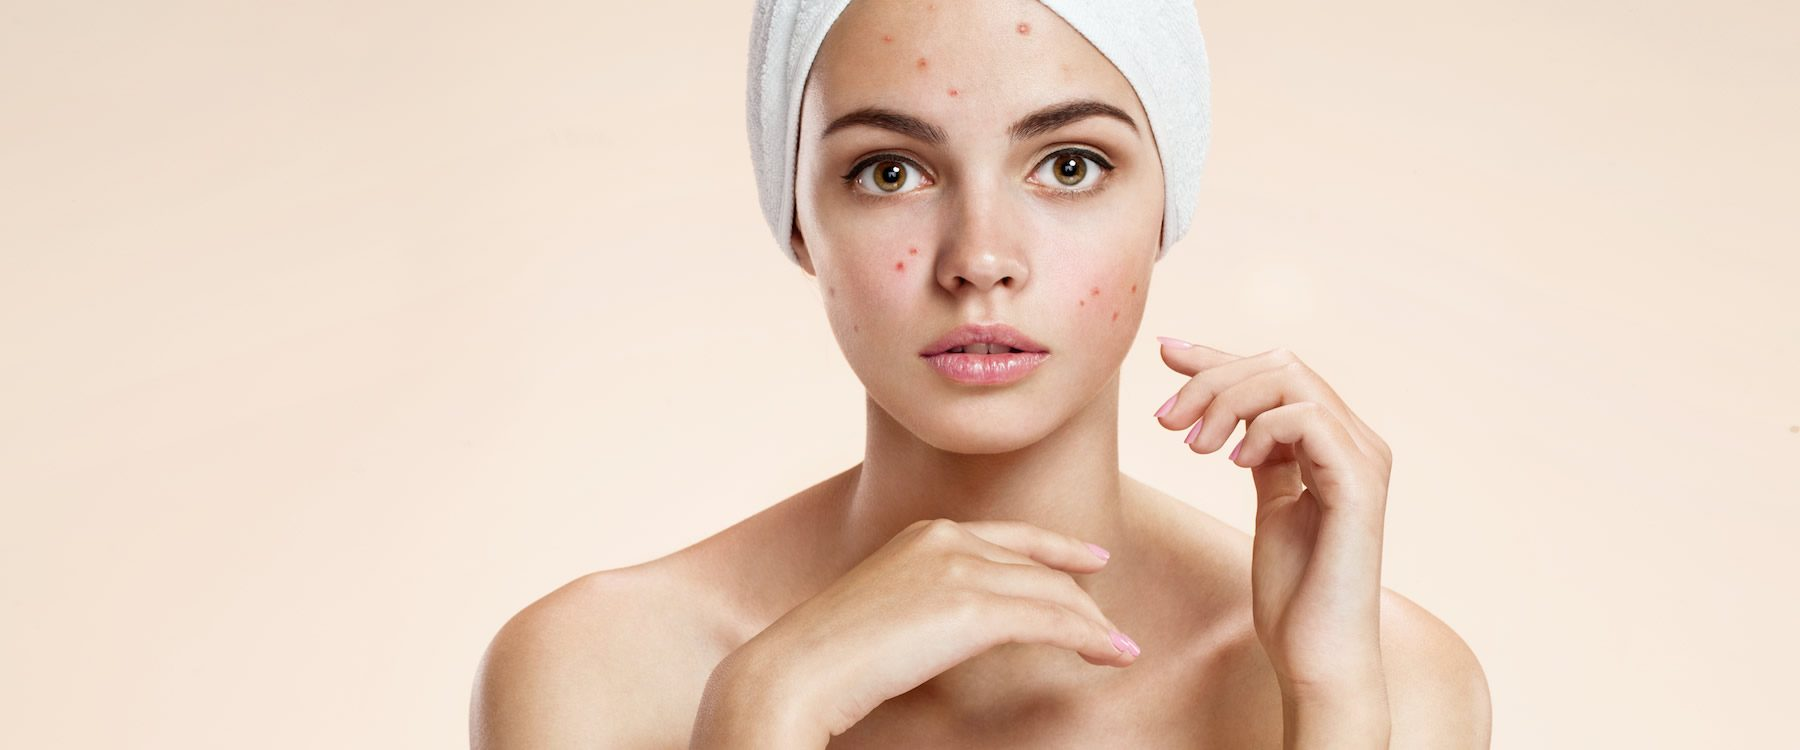 Great Advice On Getting Rid Of Your Acne